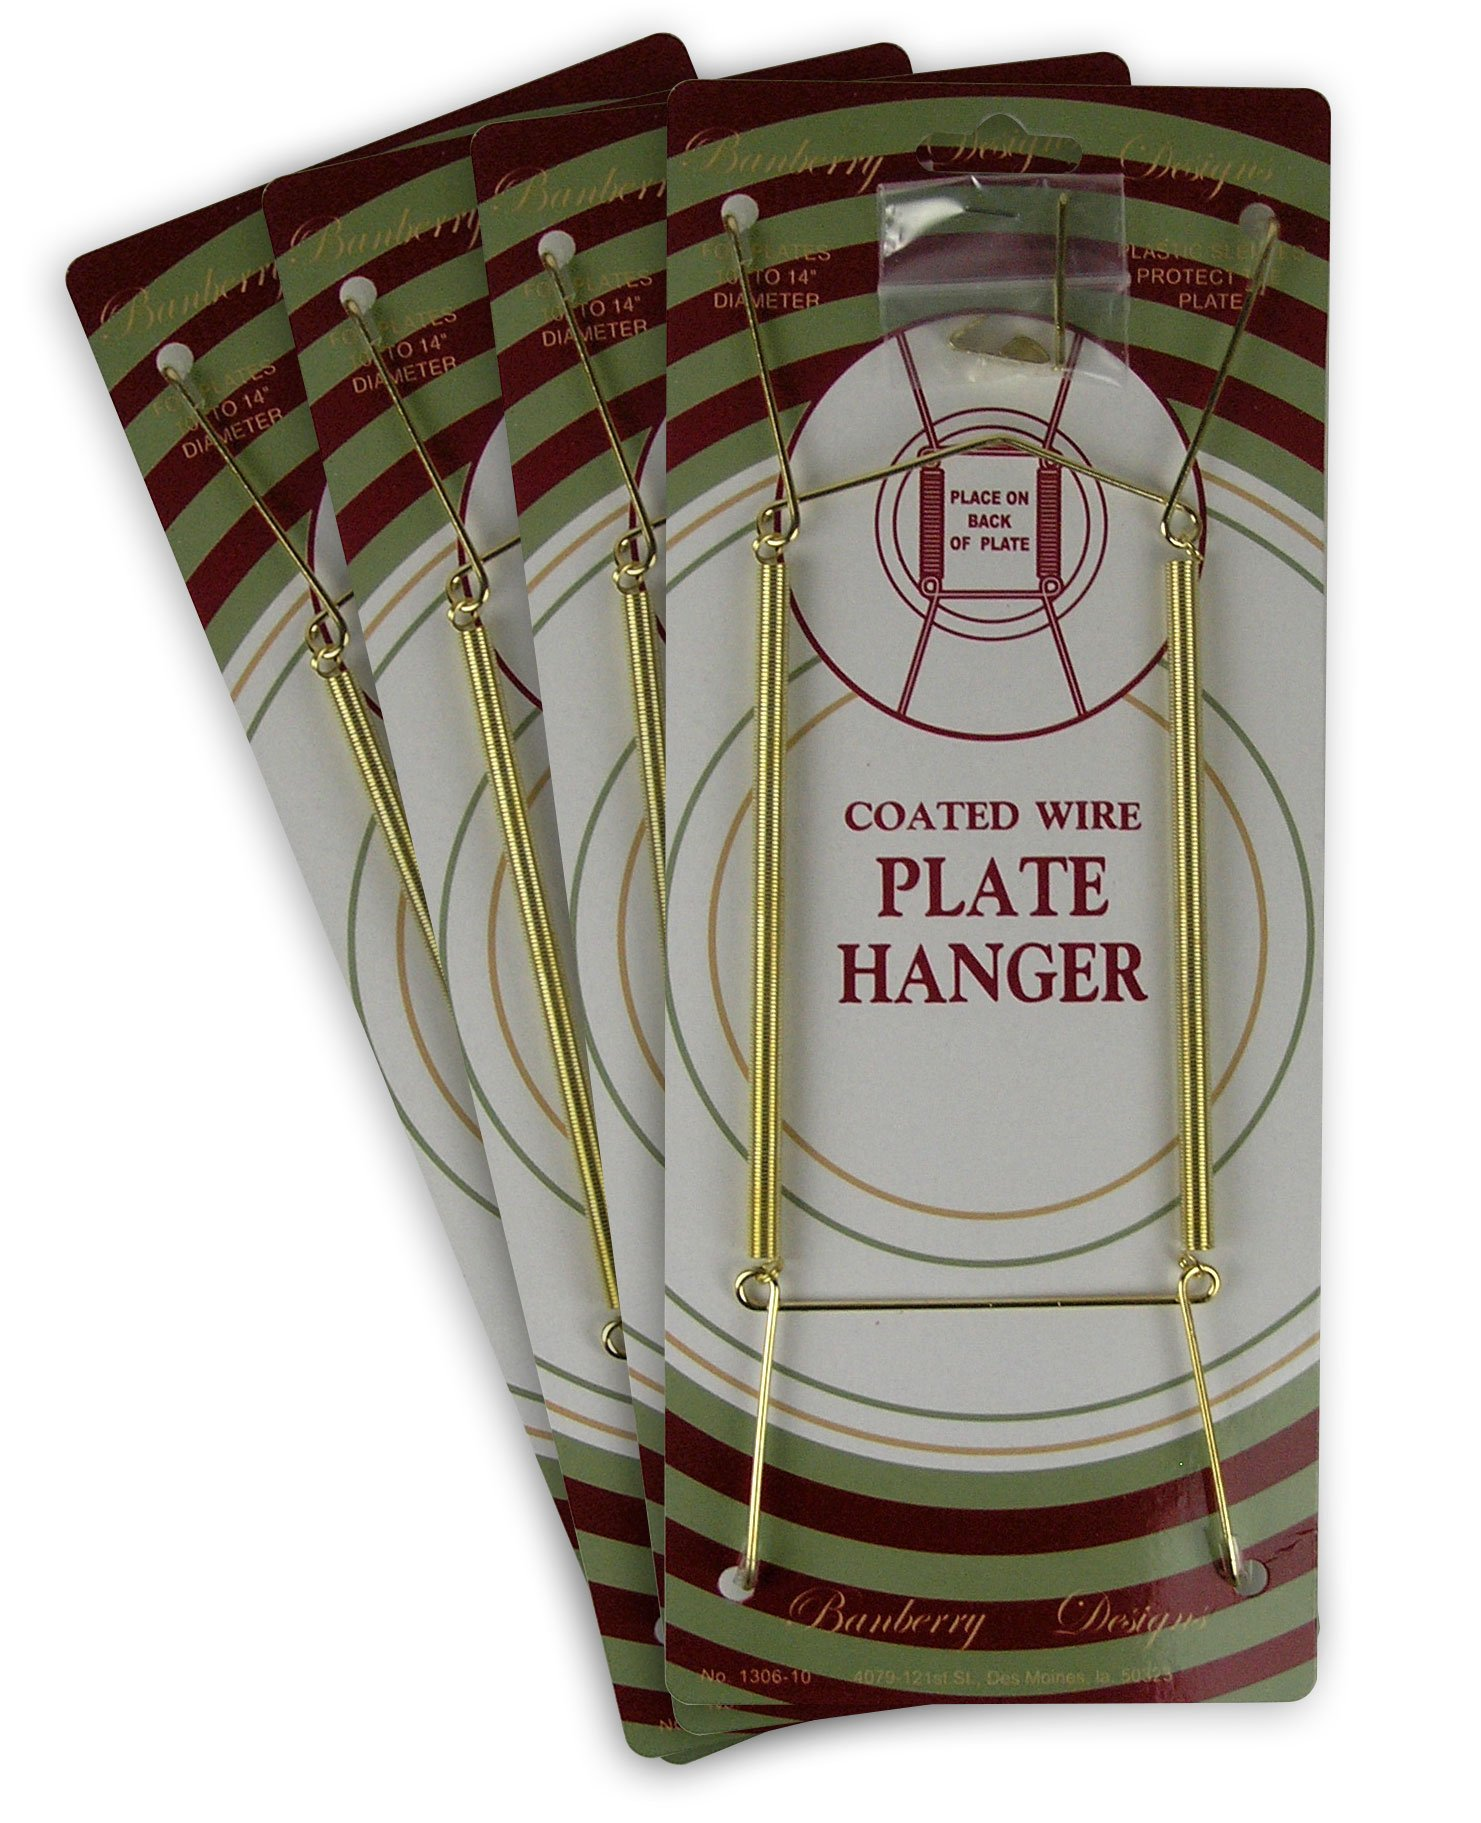 BANBERRY DESIGNS Brass Vinyl Coated Plate Hanger 10 to 14 Inch Pack of 4 Hangers - Plate Hangers for the Wall